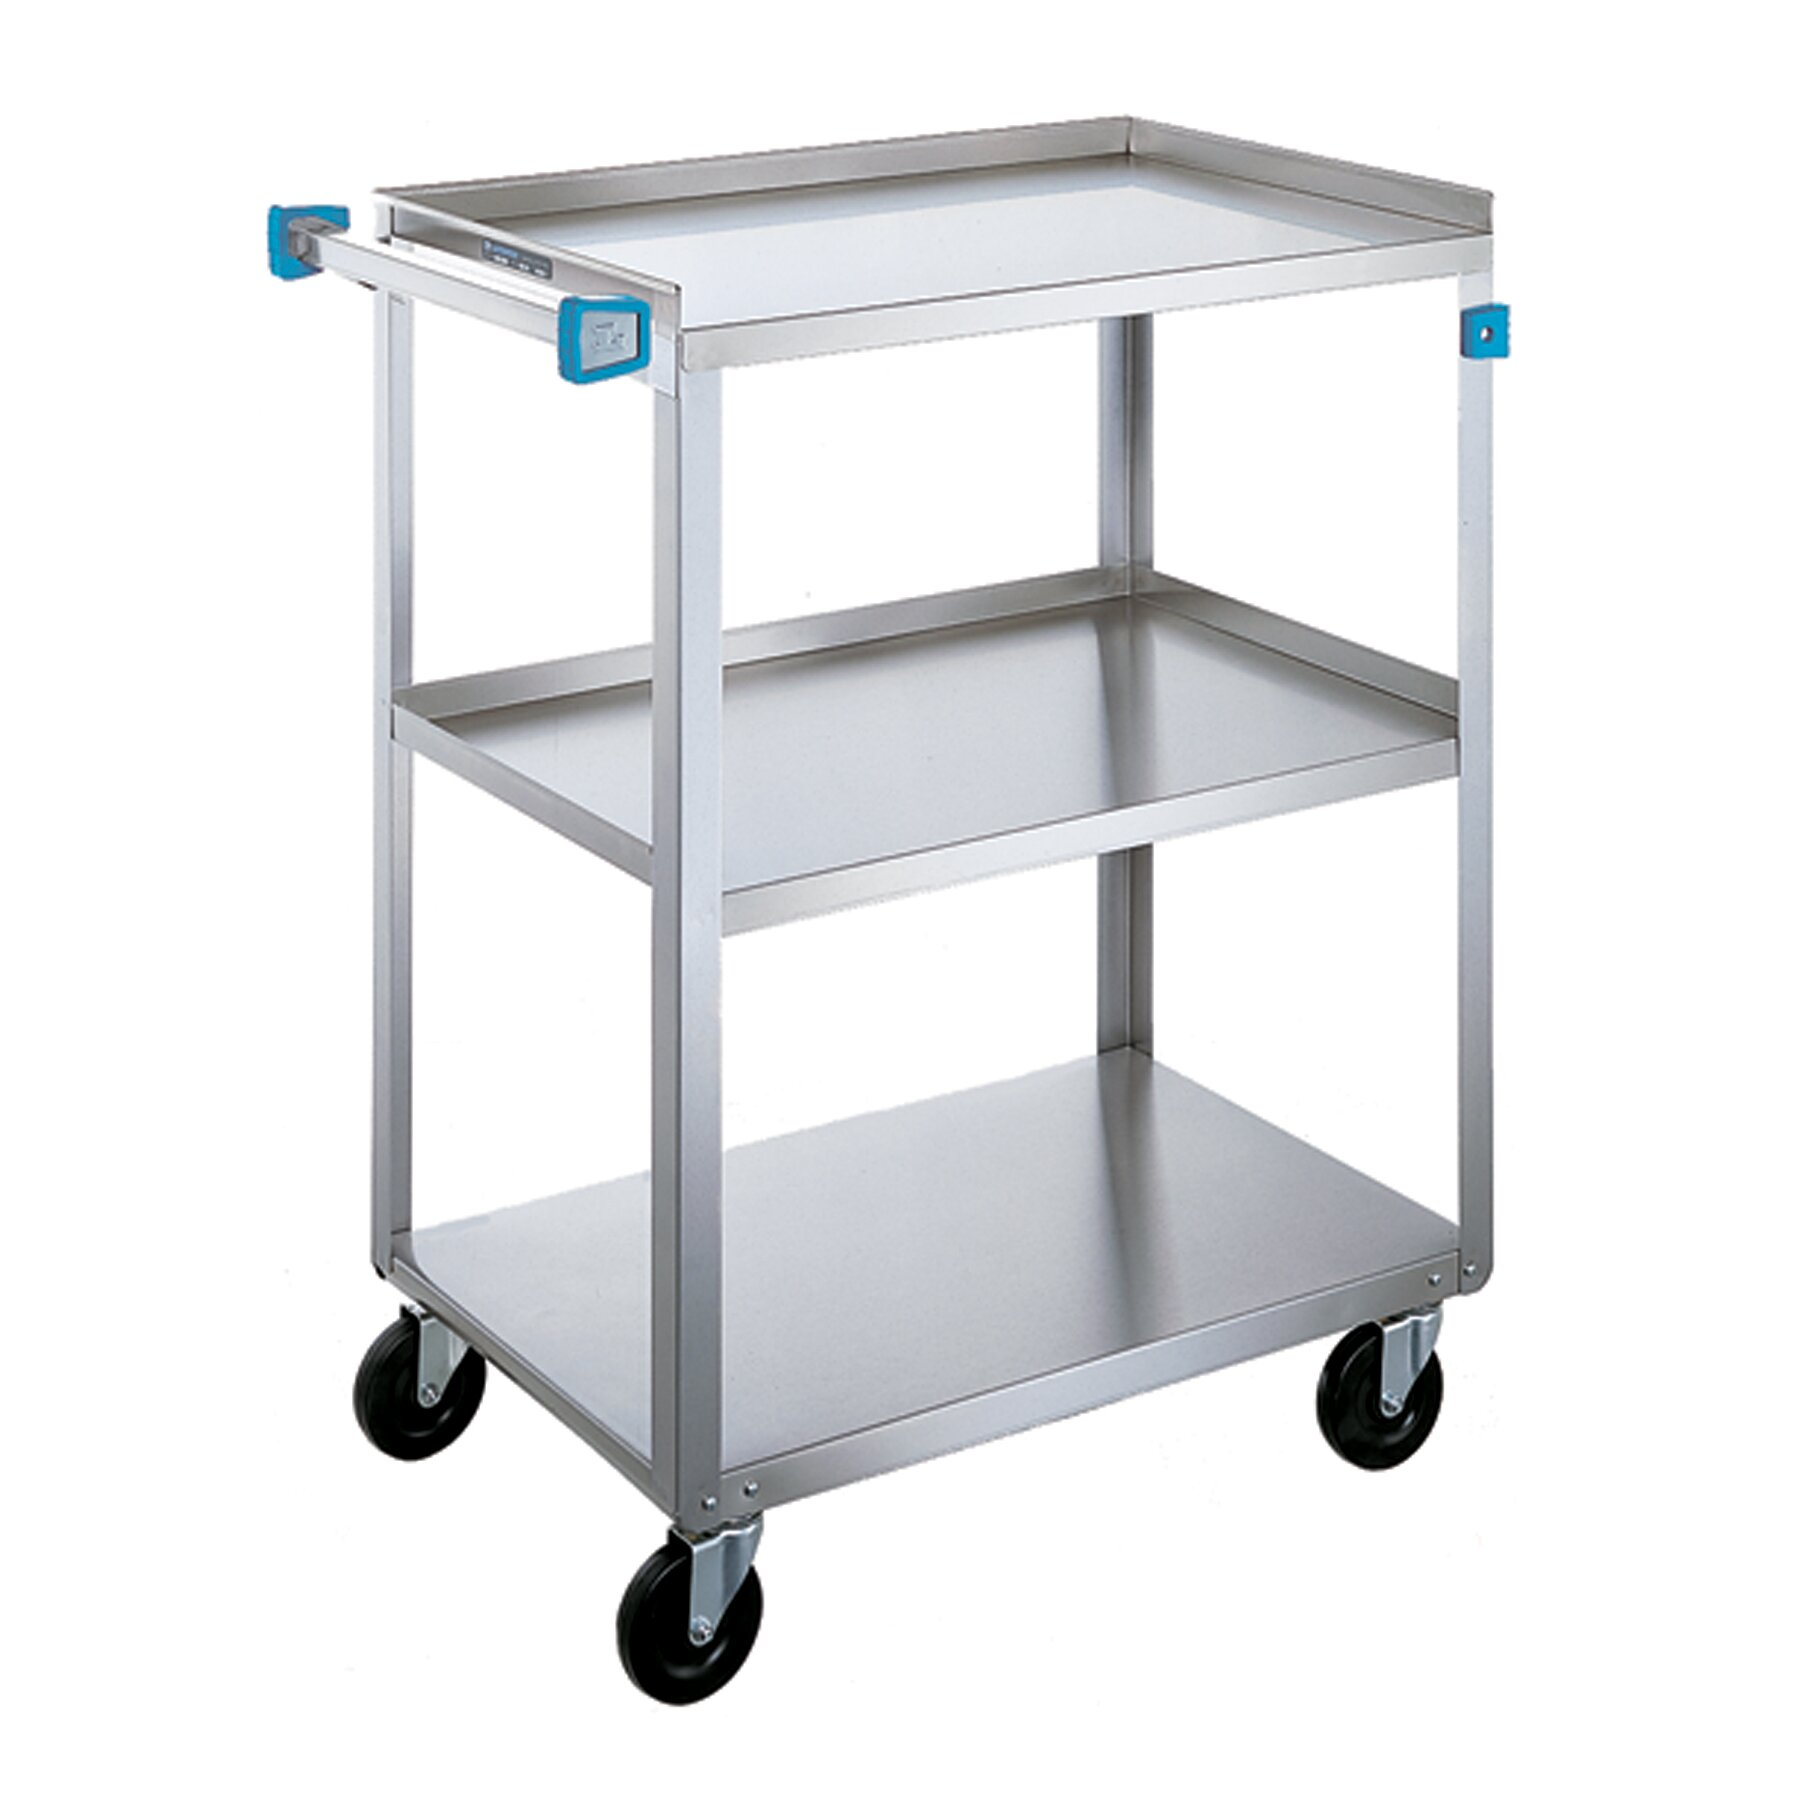 Factory Utility Cart: Lakeside Manufacturing Utility Cart & Reviews